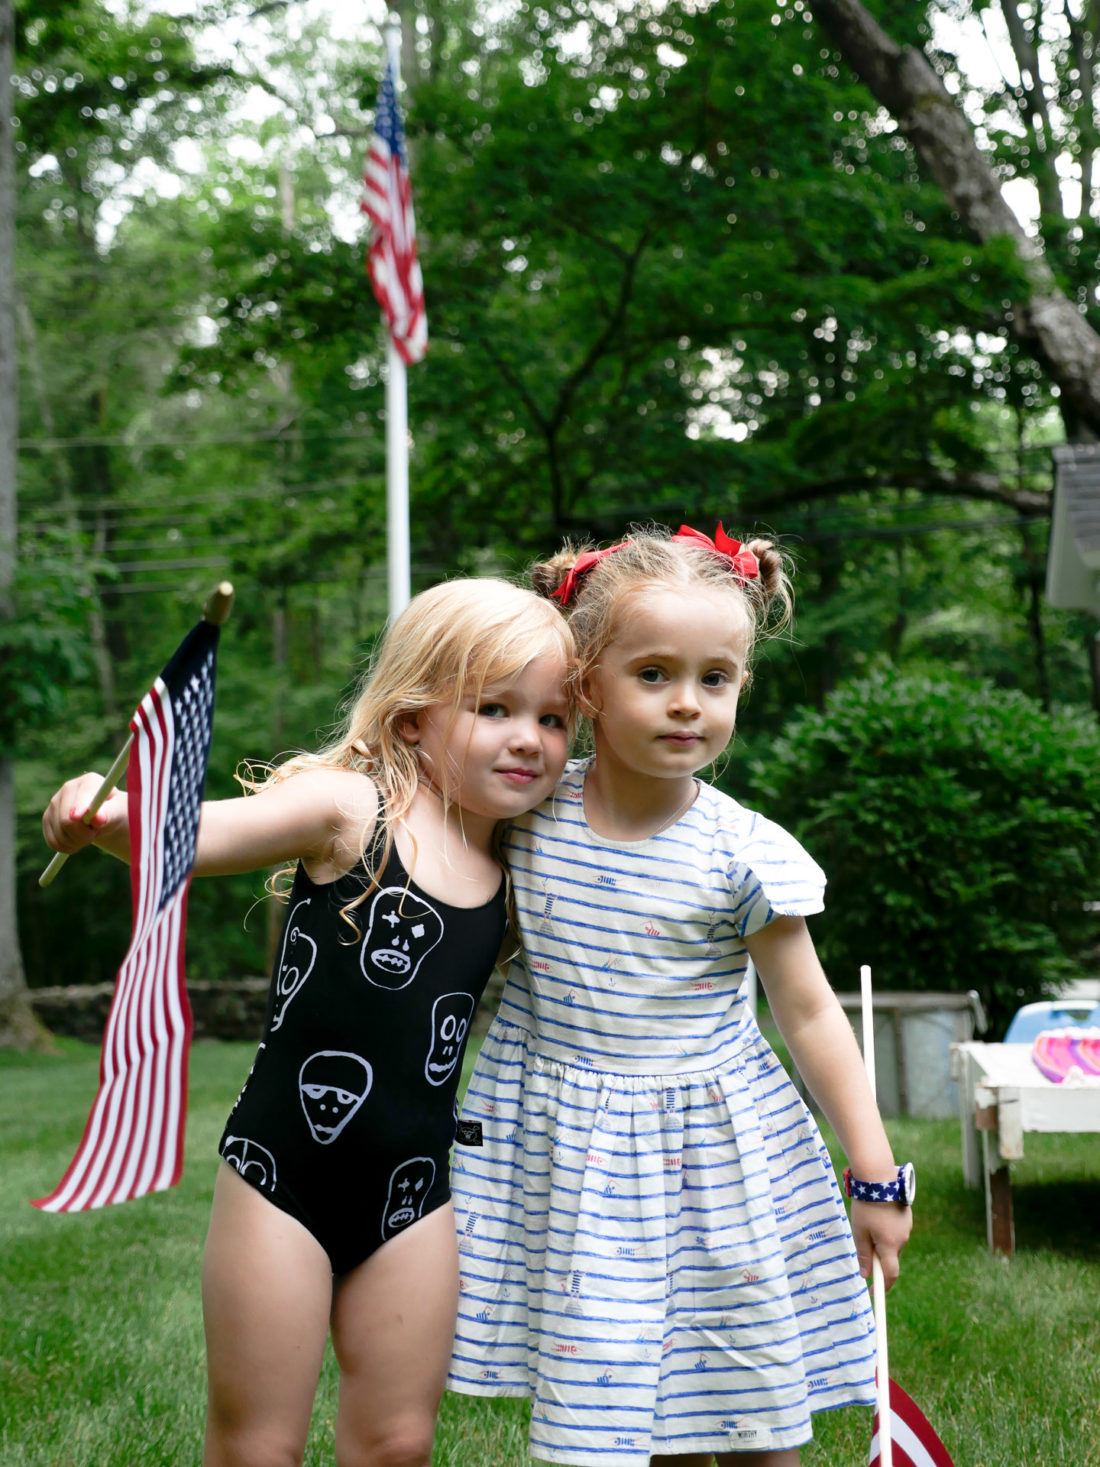 Marlowe Martino poses with a friend at a fourth of july party